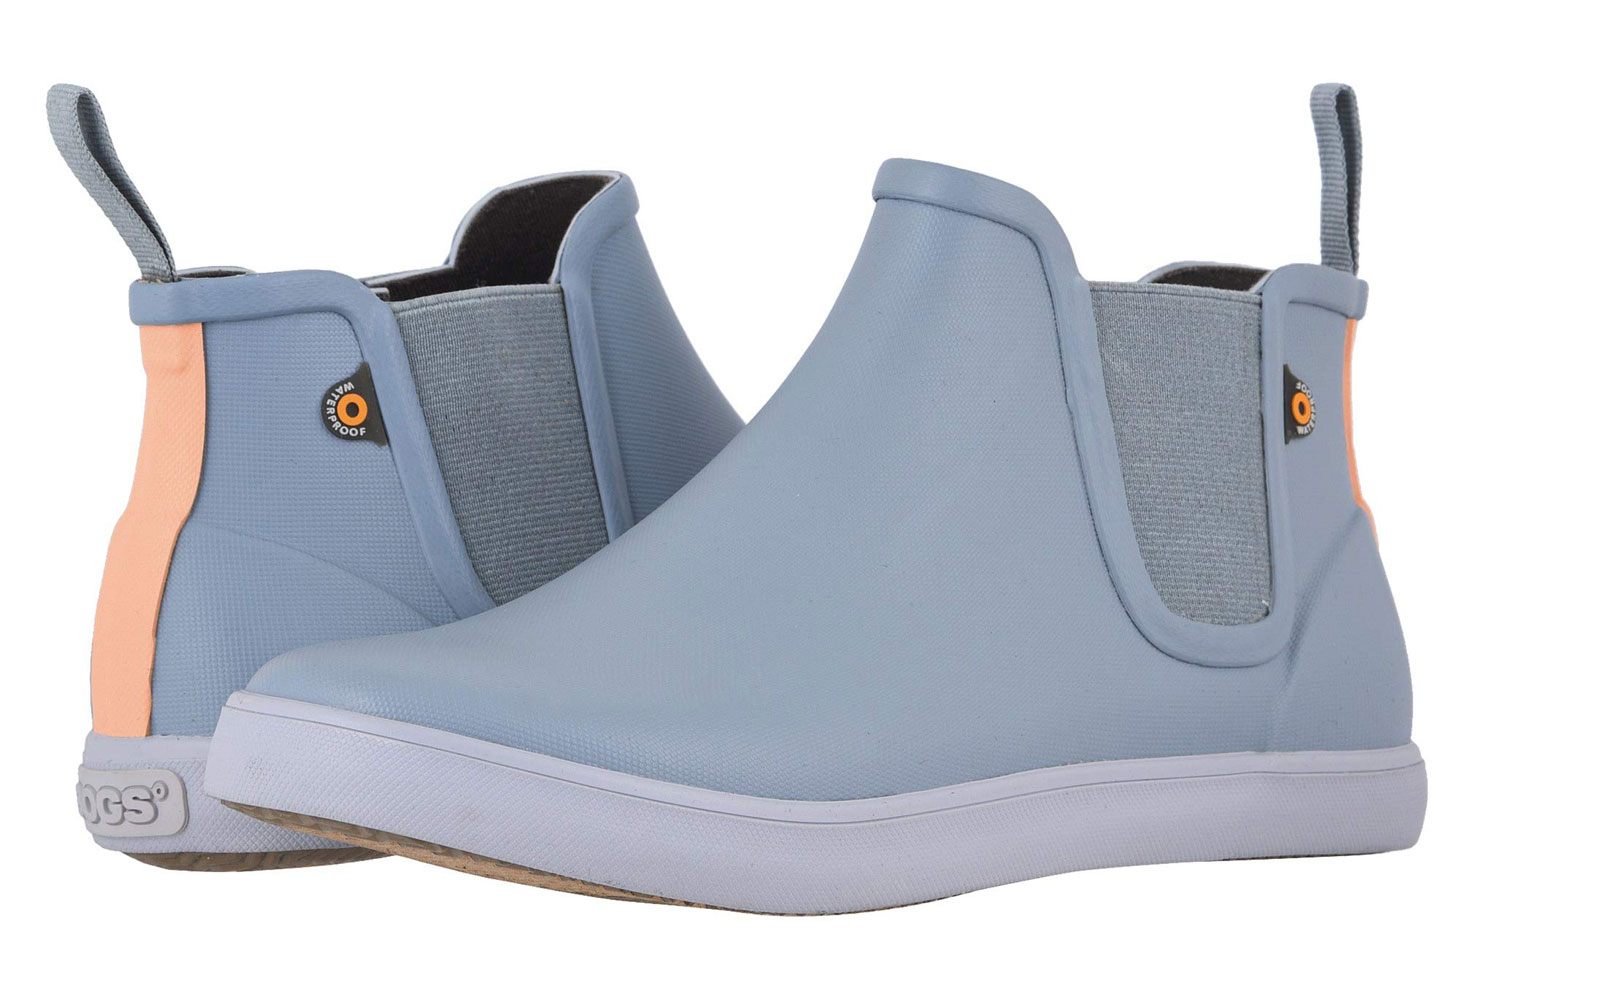 Women's short light blue rain boots